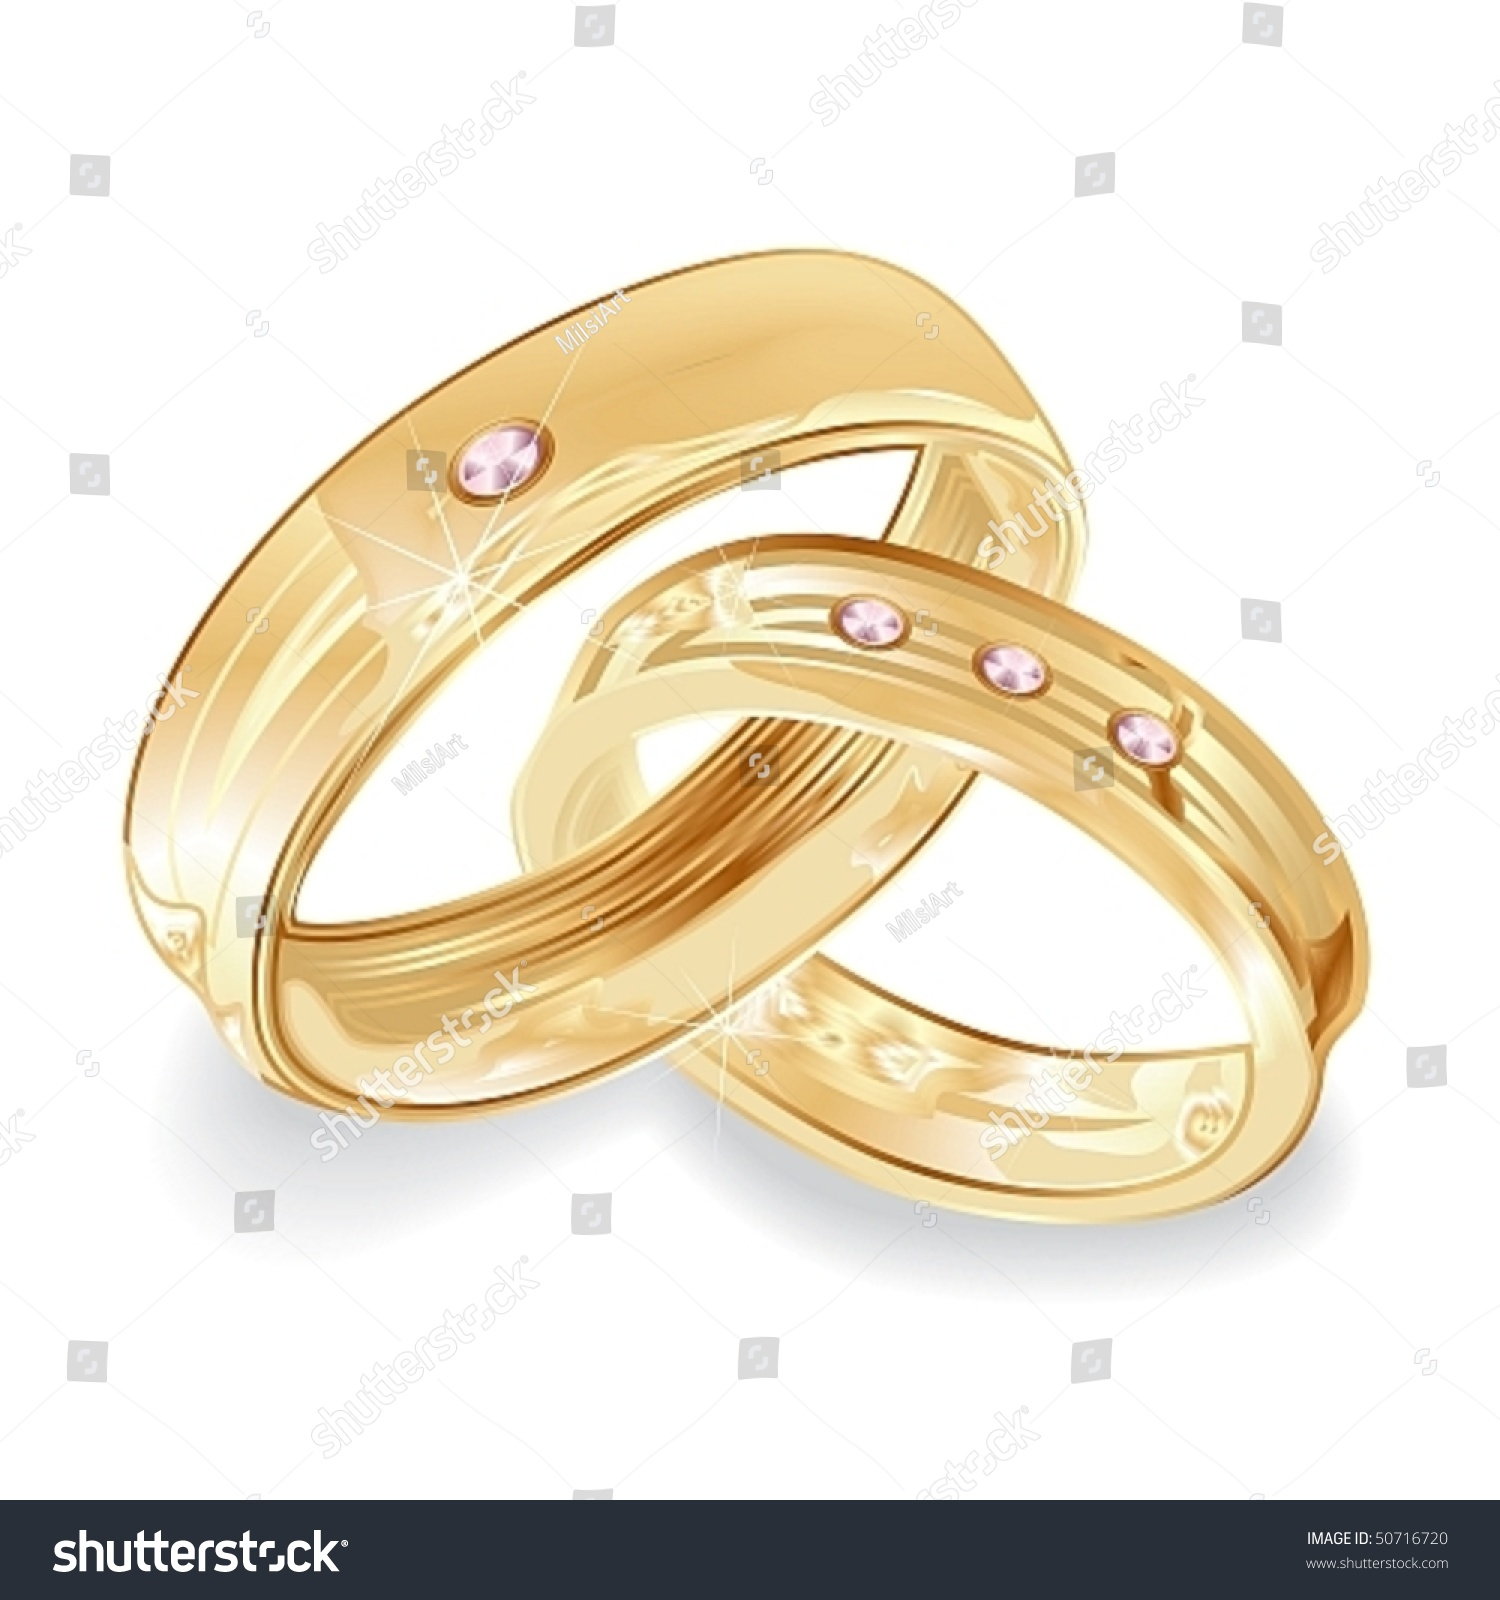 rings isolated golden engagement ring best of vector illustration wedding stock new